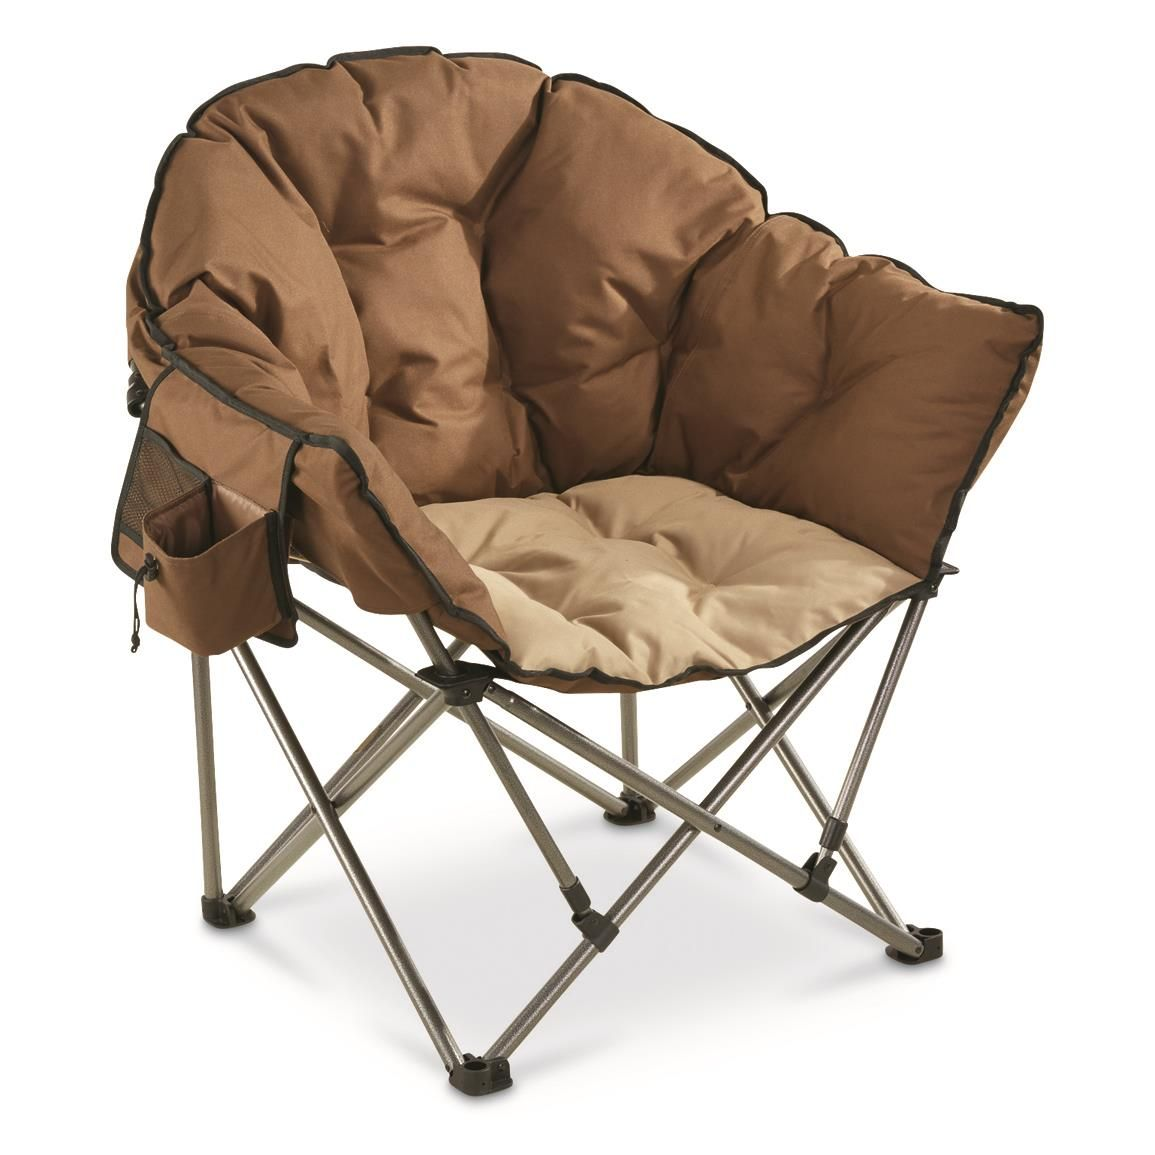 Guide Gear Oversized Club Camp Chair 500 Lb Capacity